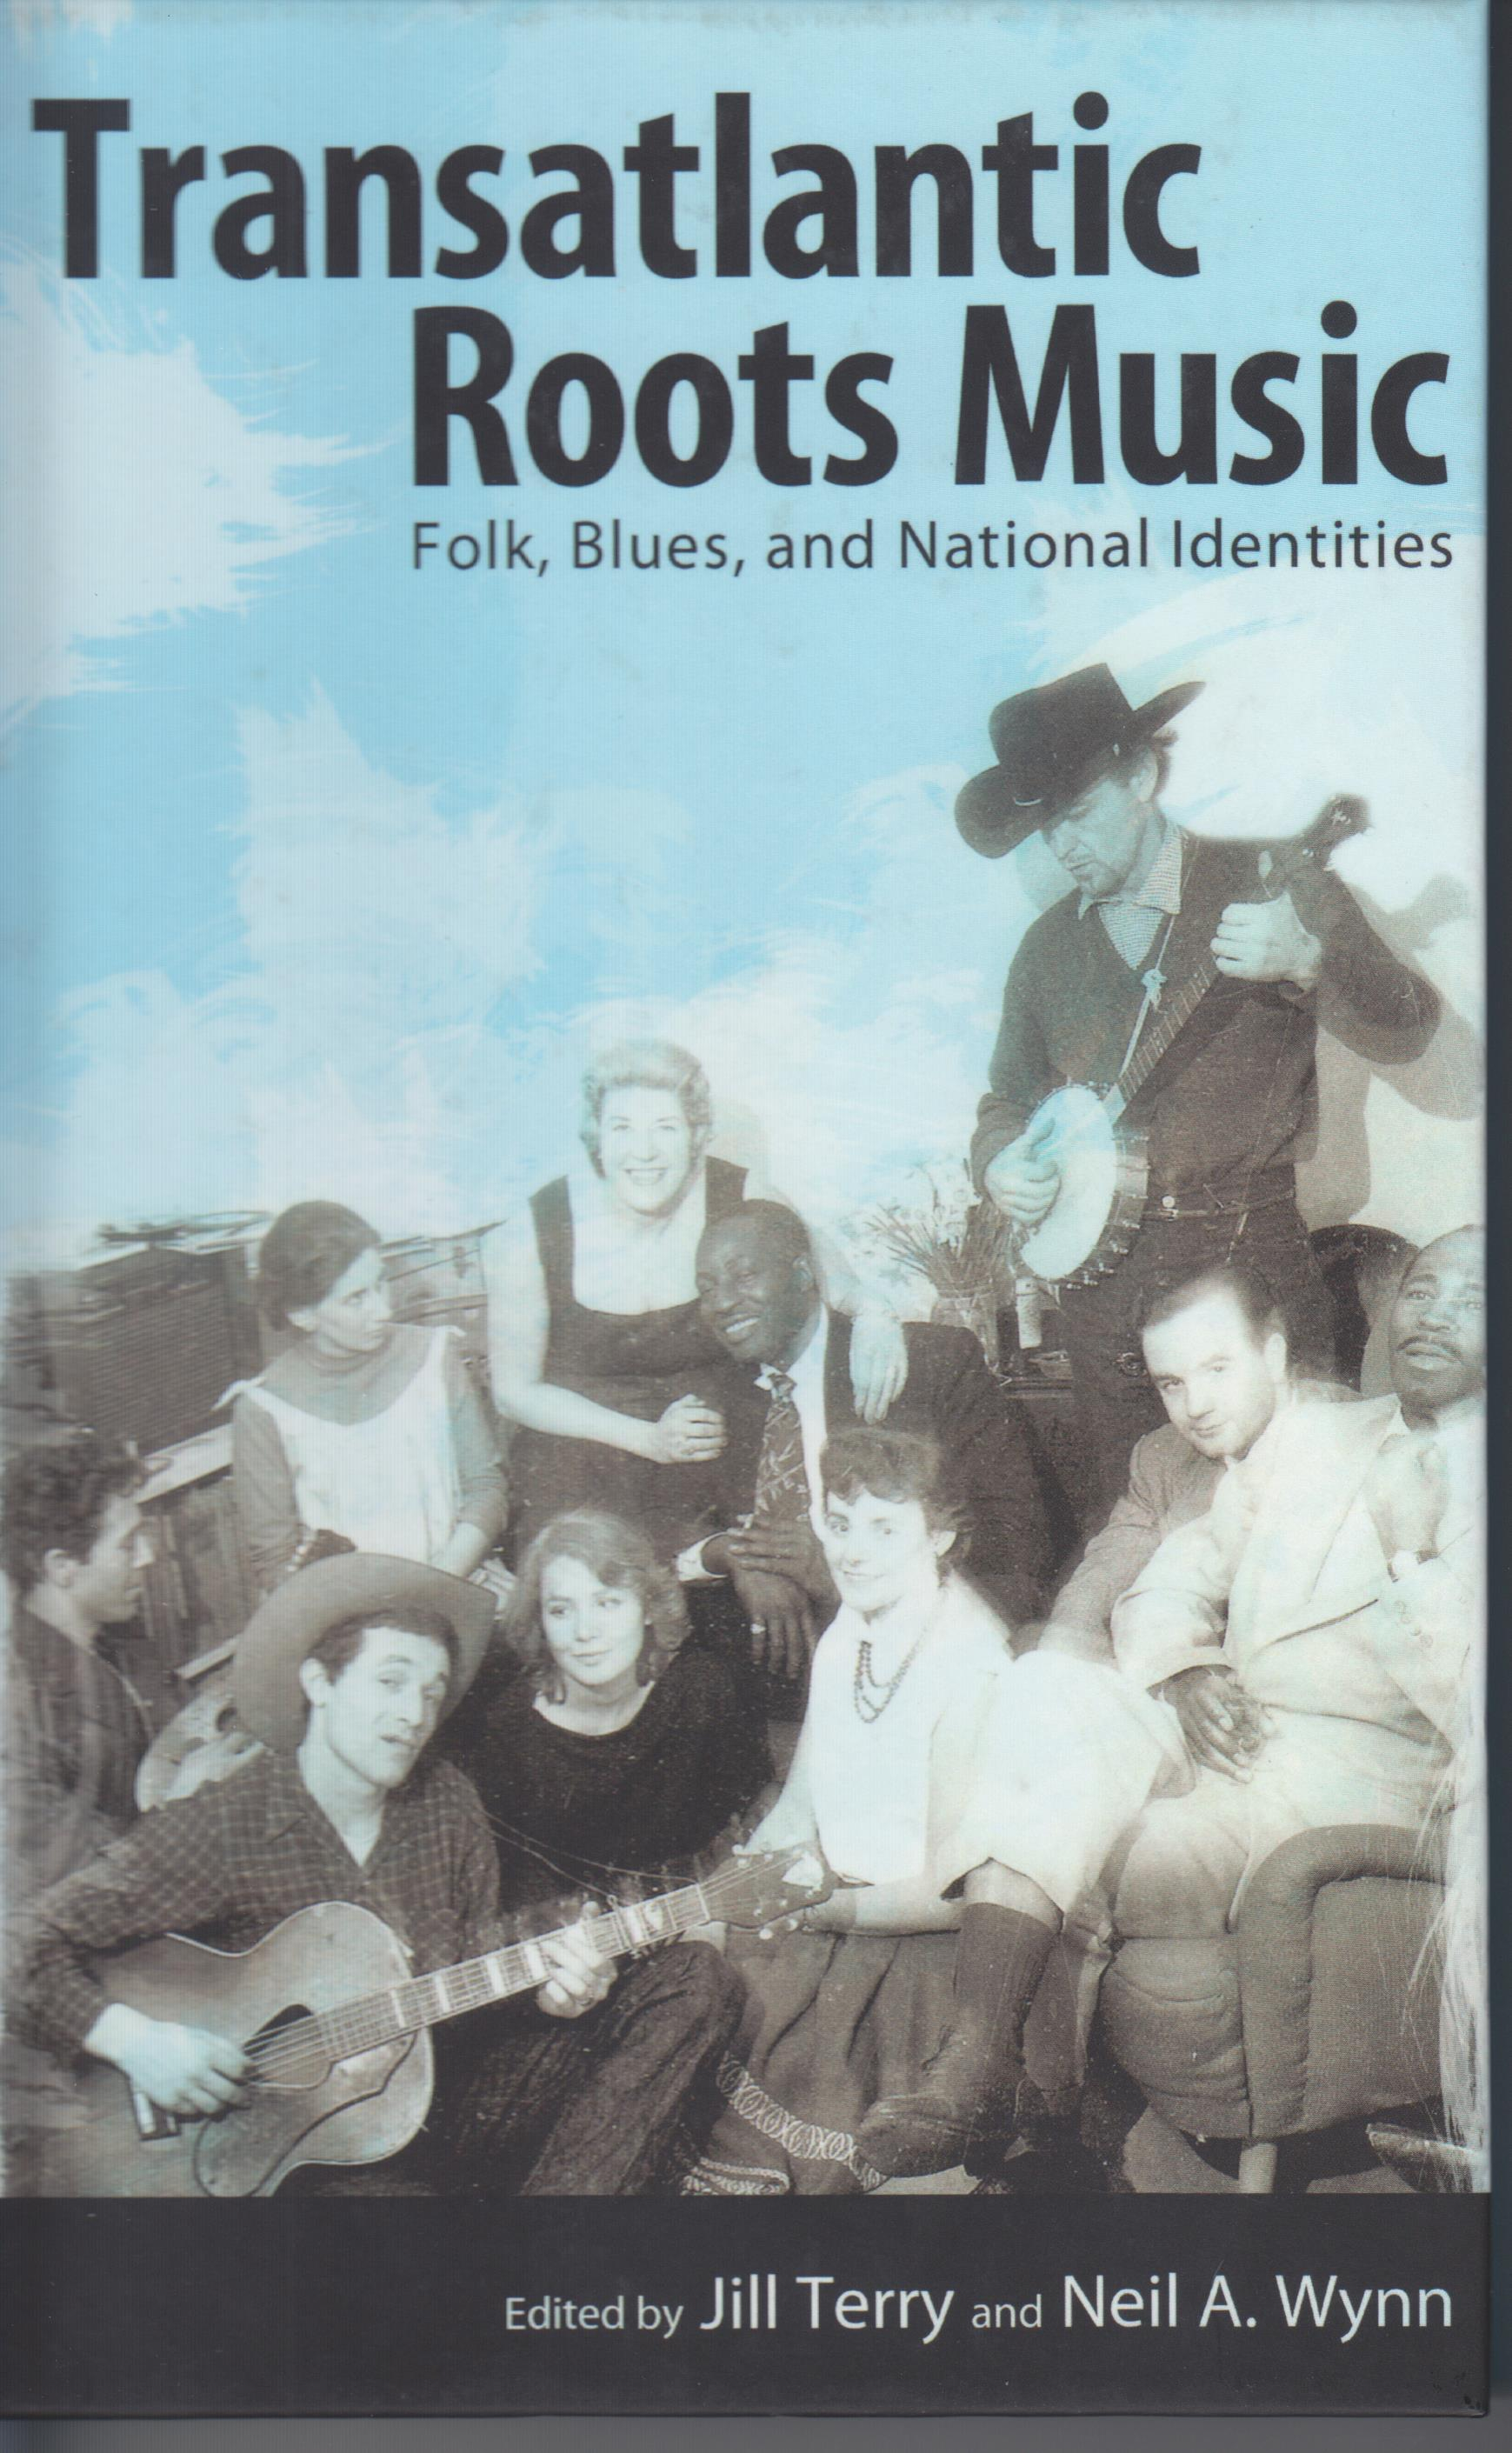 Image for Transatlantic Roots Music. Folk, Blues, and National Identities